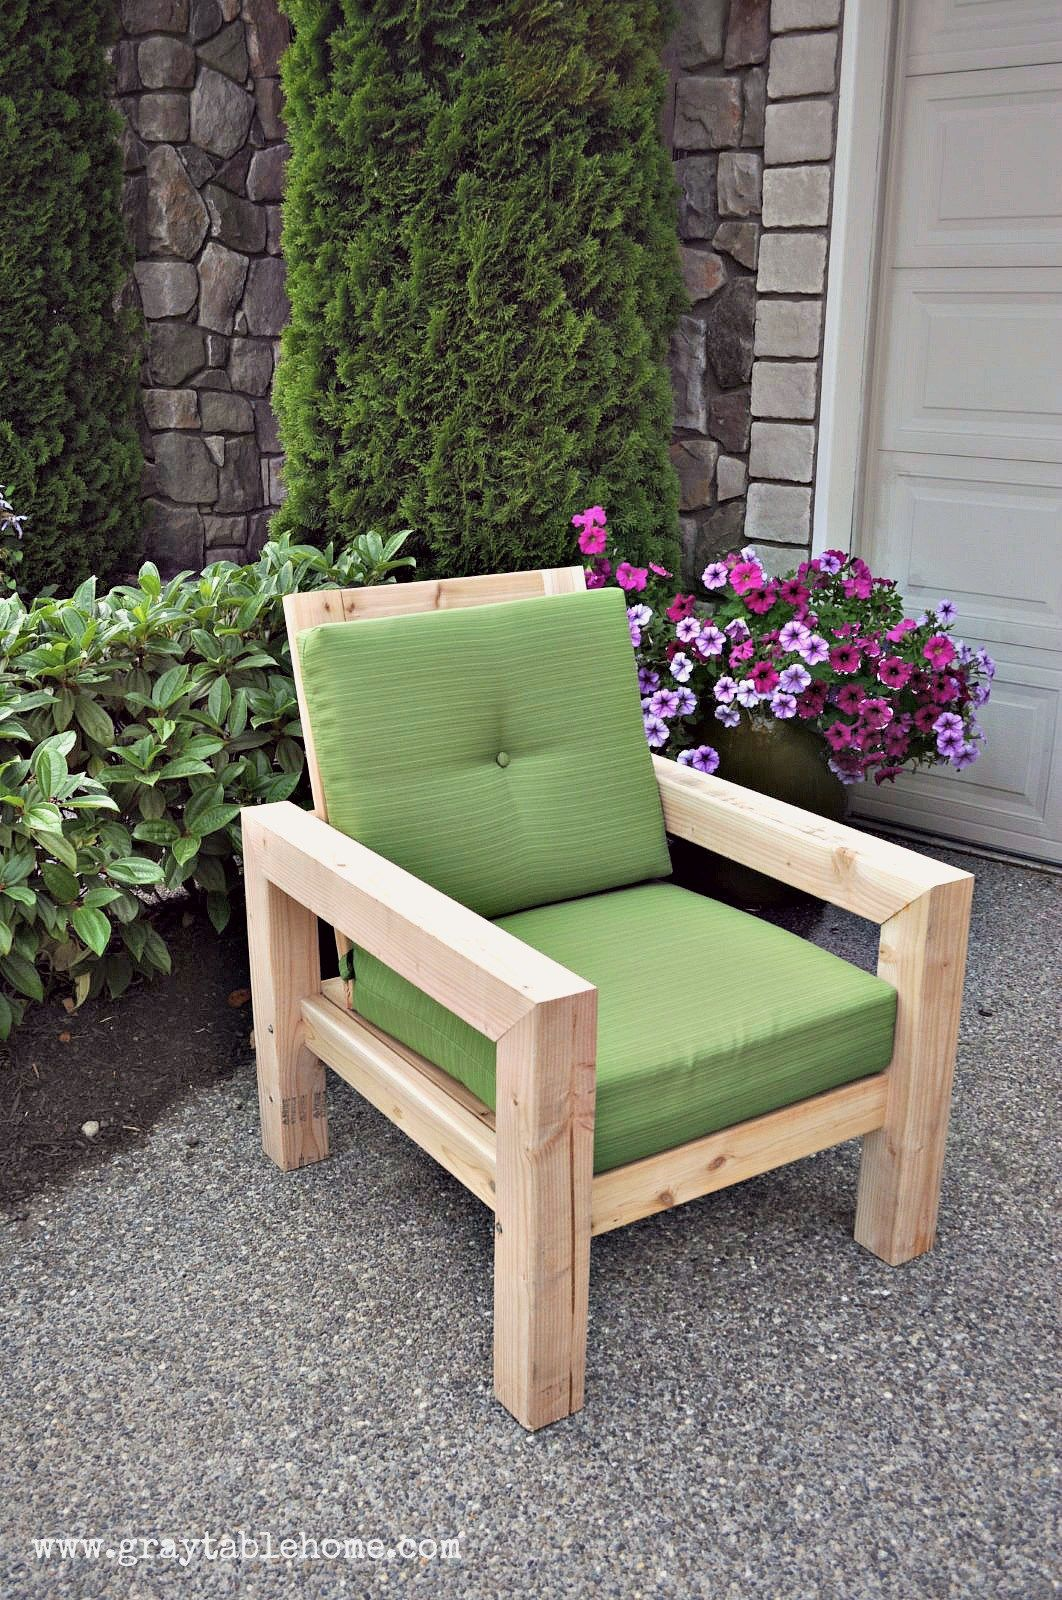 outdoor patio chairs DIY Modern Rustic Outdoor Chair plans using outdoor